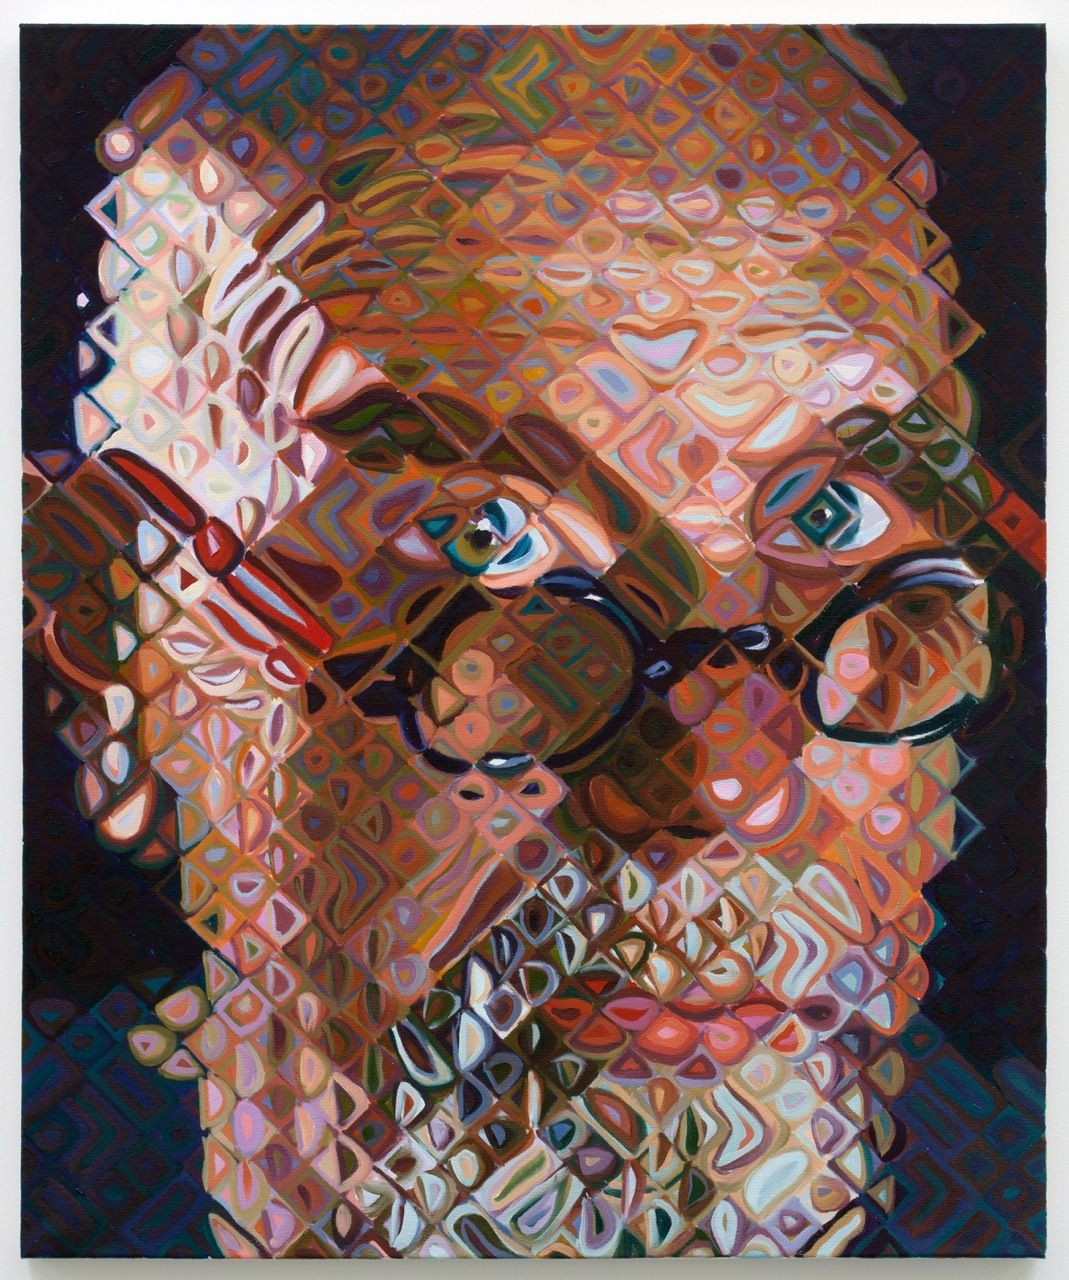 Painting style by Chuck Close. Close up it looks abstract but the ...